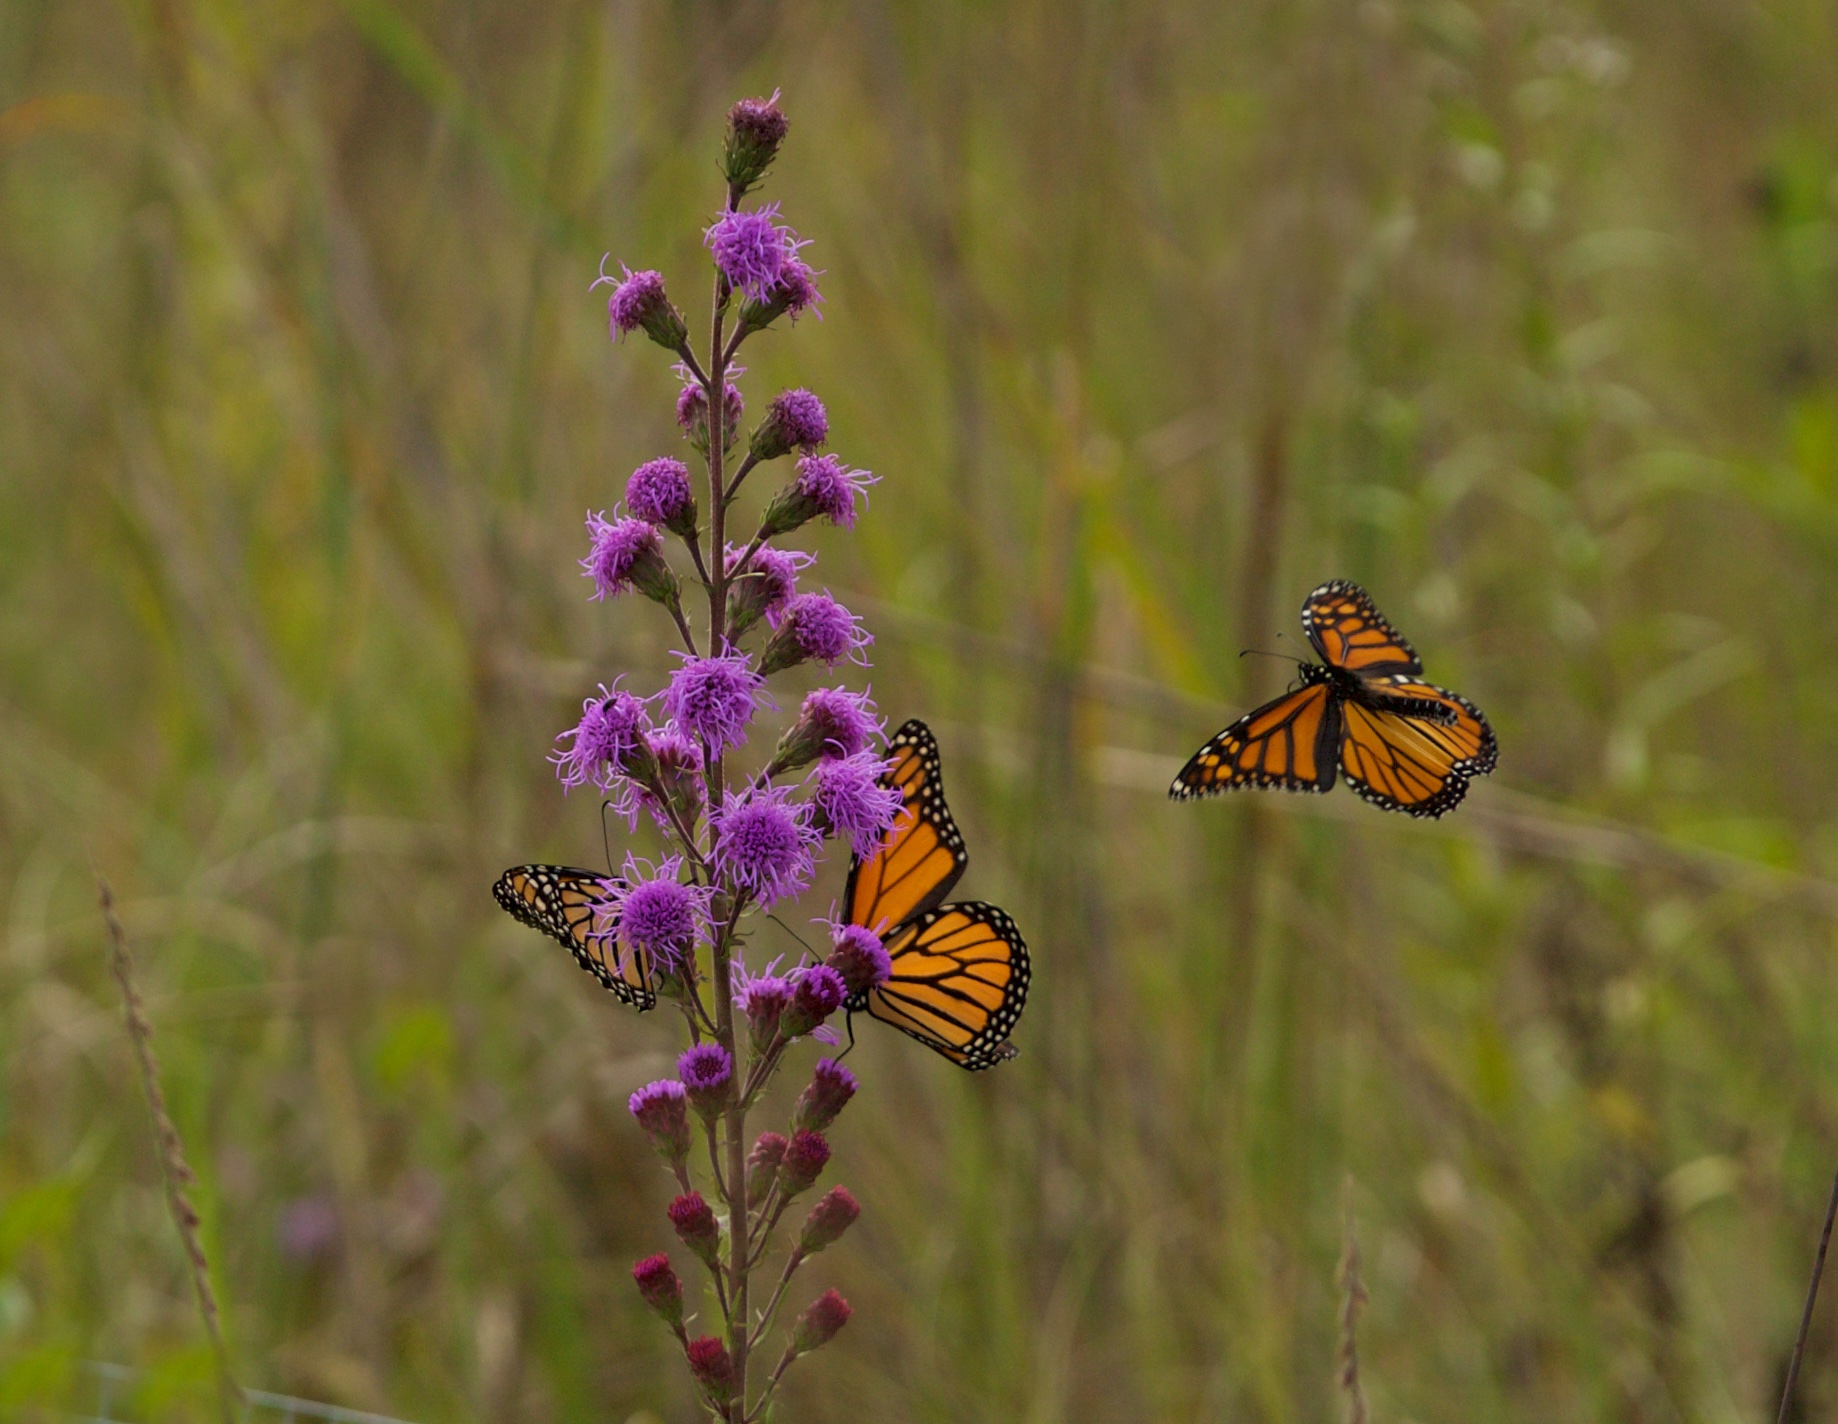 Monarchs nectaring on liatris. Photo by Arlene Koziol